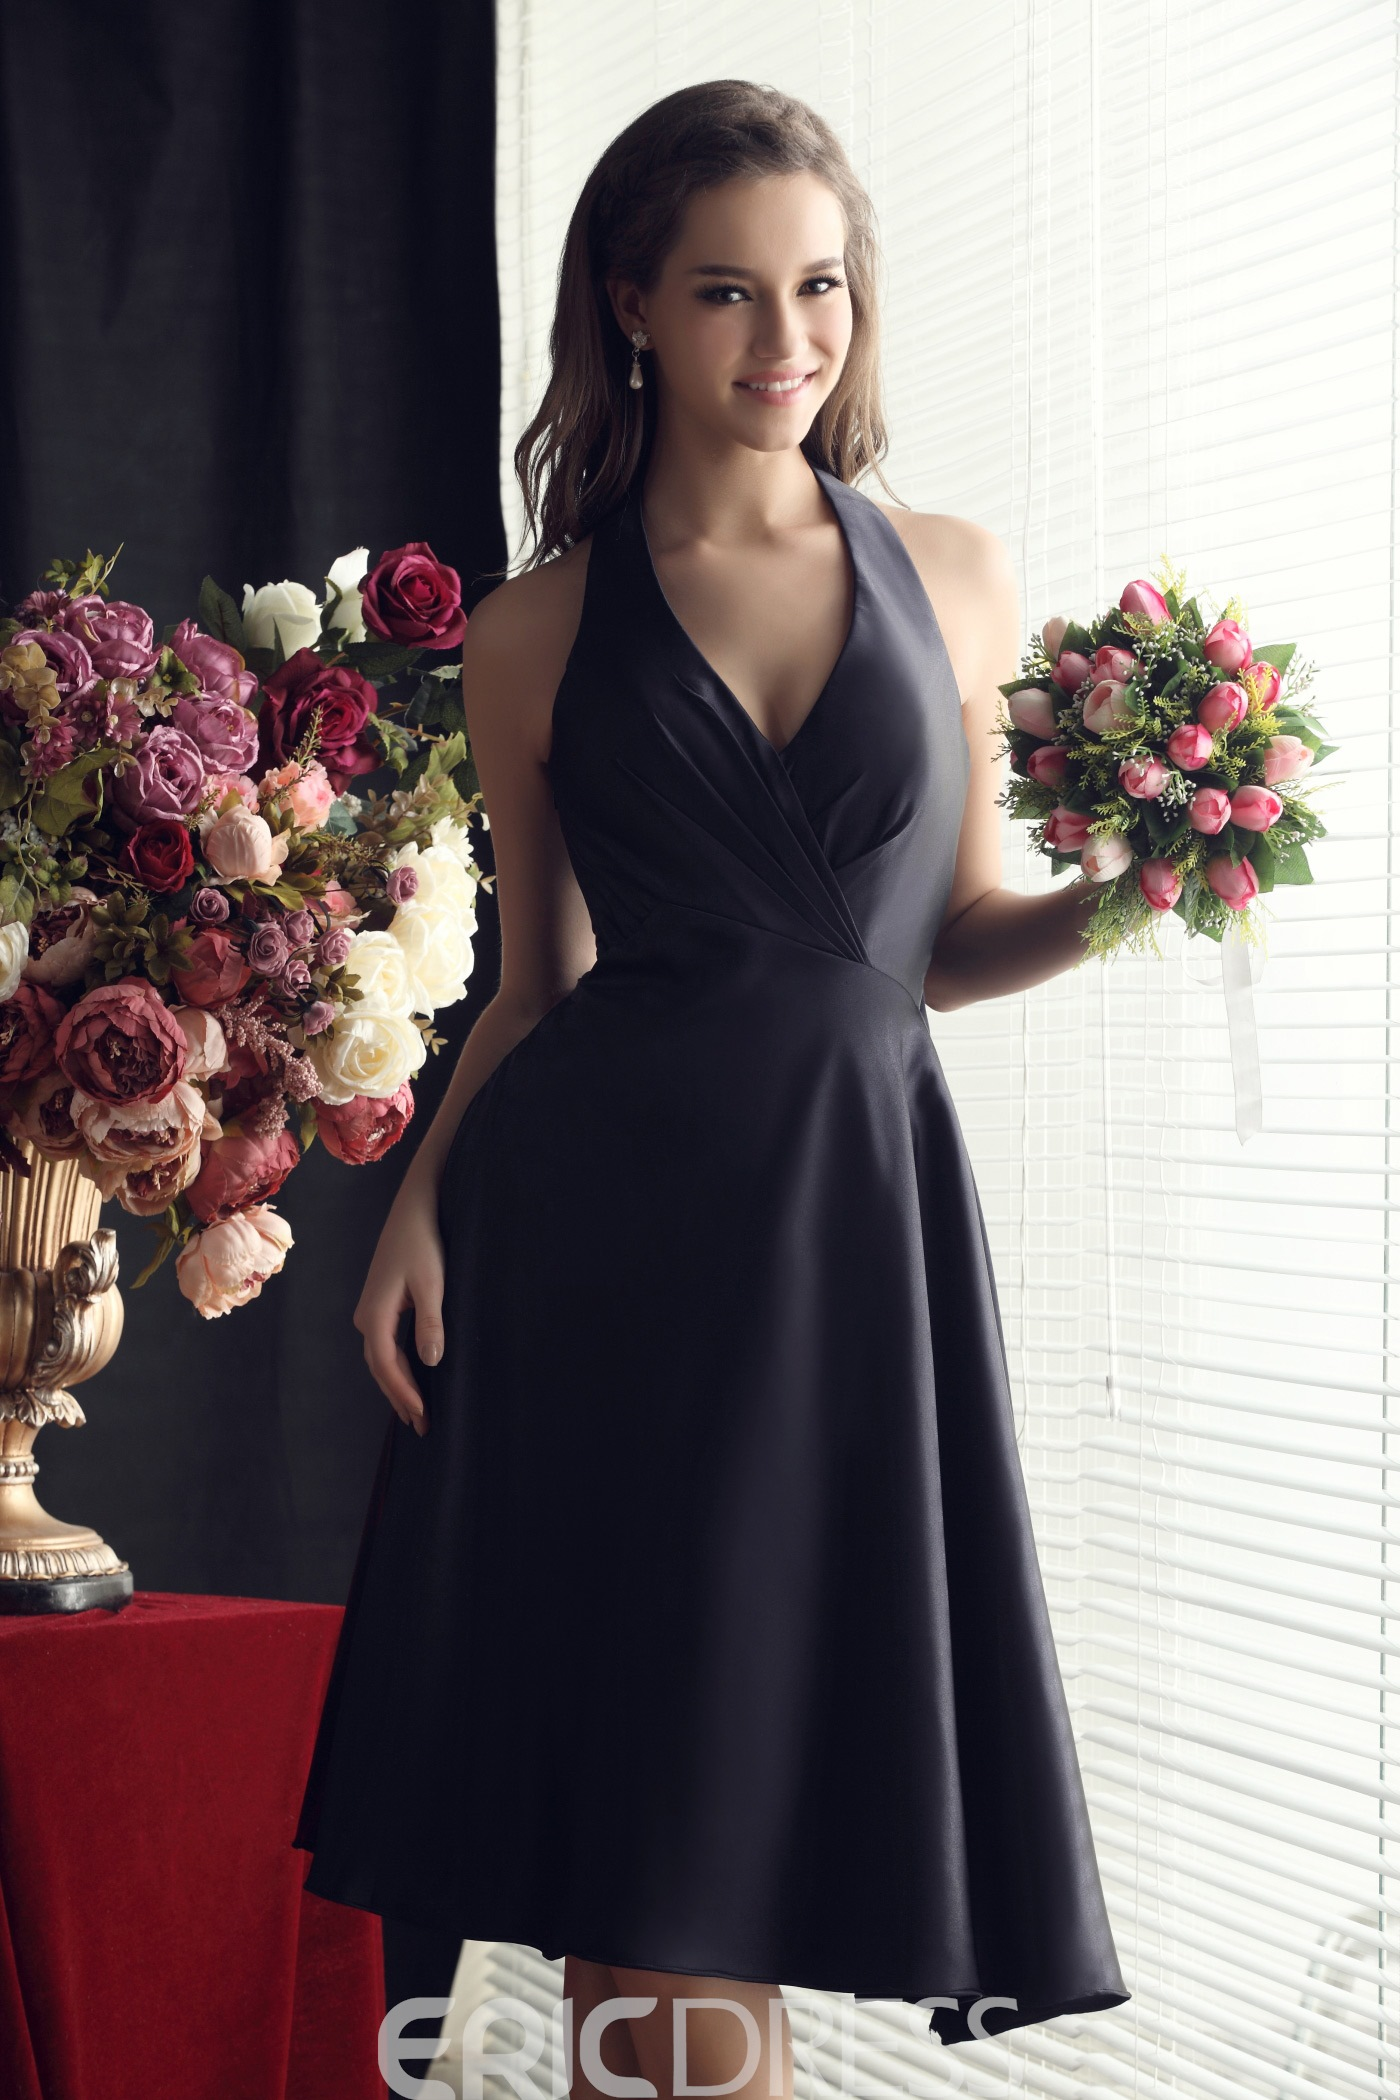 Ruched A-Line Bowknot Halter Knee-length Bridesmaid Dress